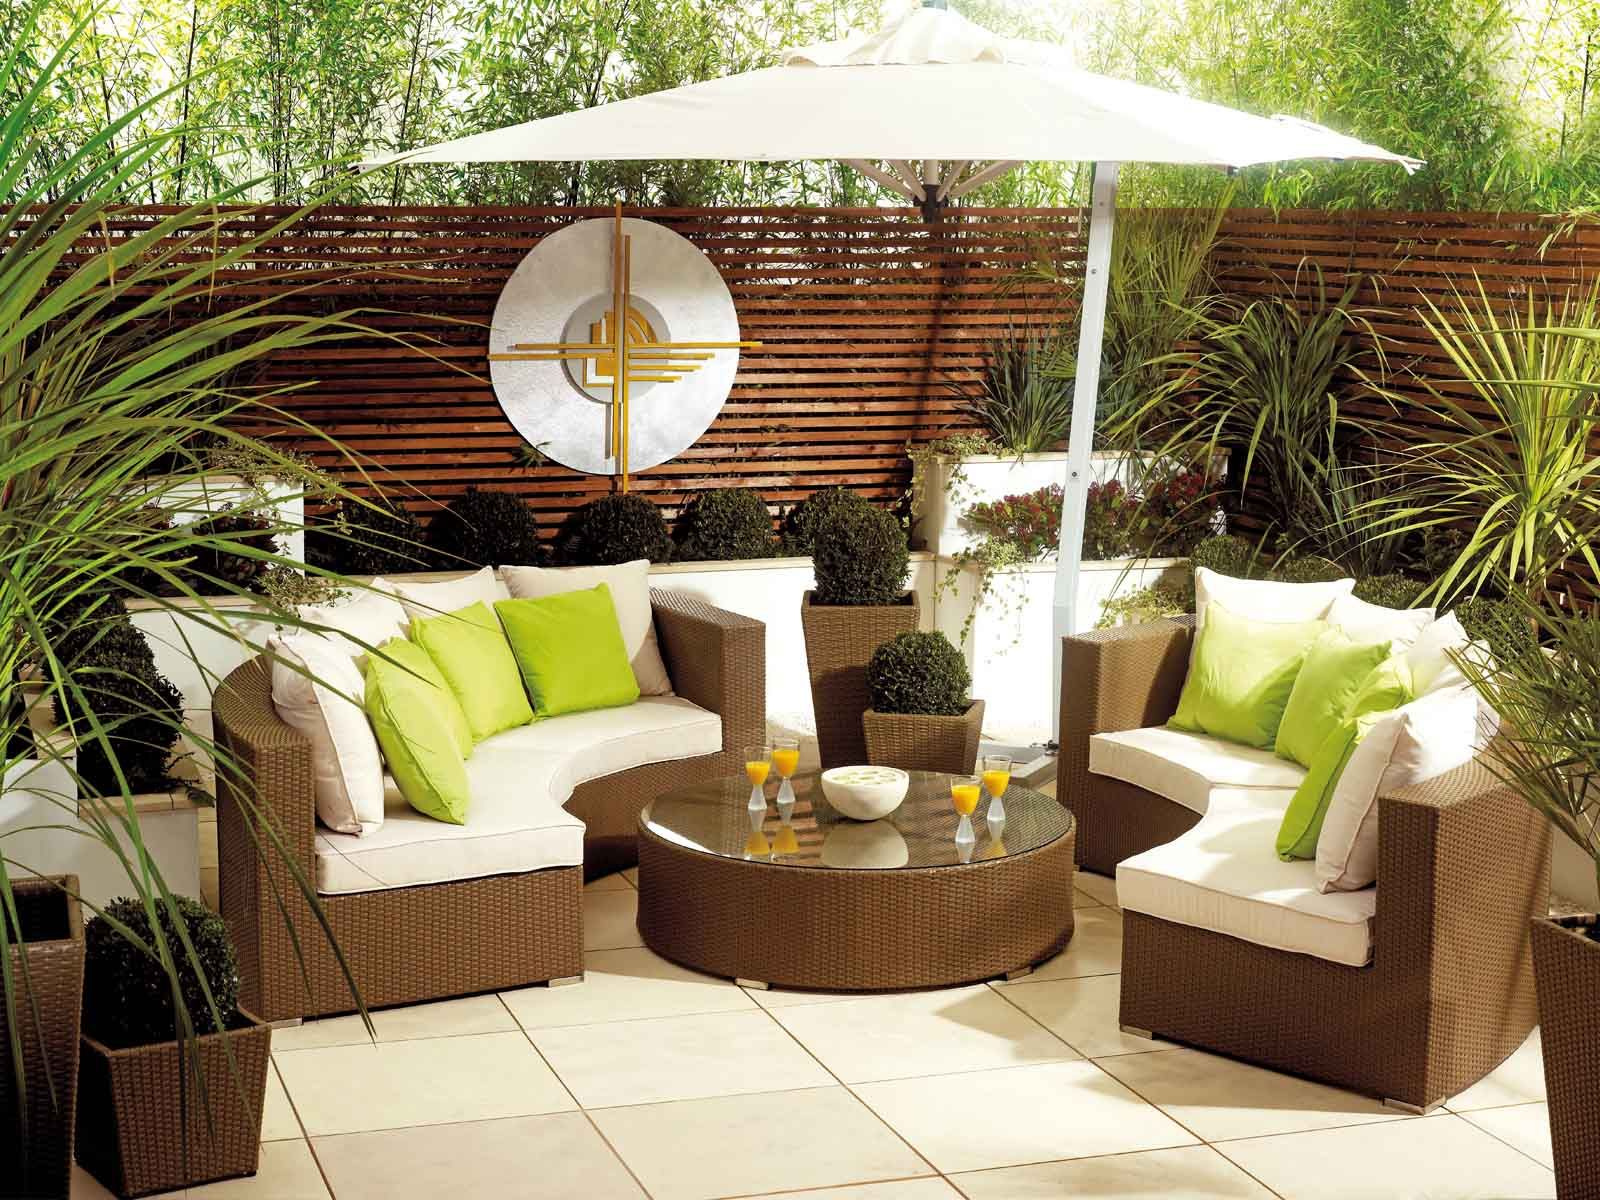 20 Beautiful Outdoor Living Room Designs That Will Delight You. 20 Beautiful Outdoor Living Room Designs That Will Delight You